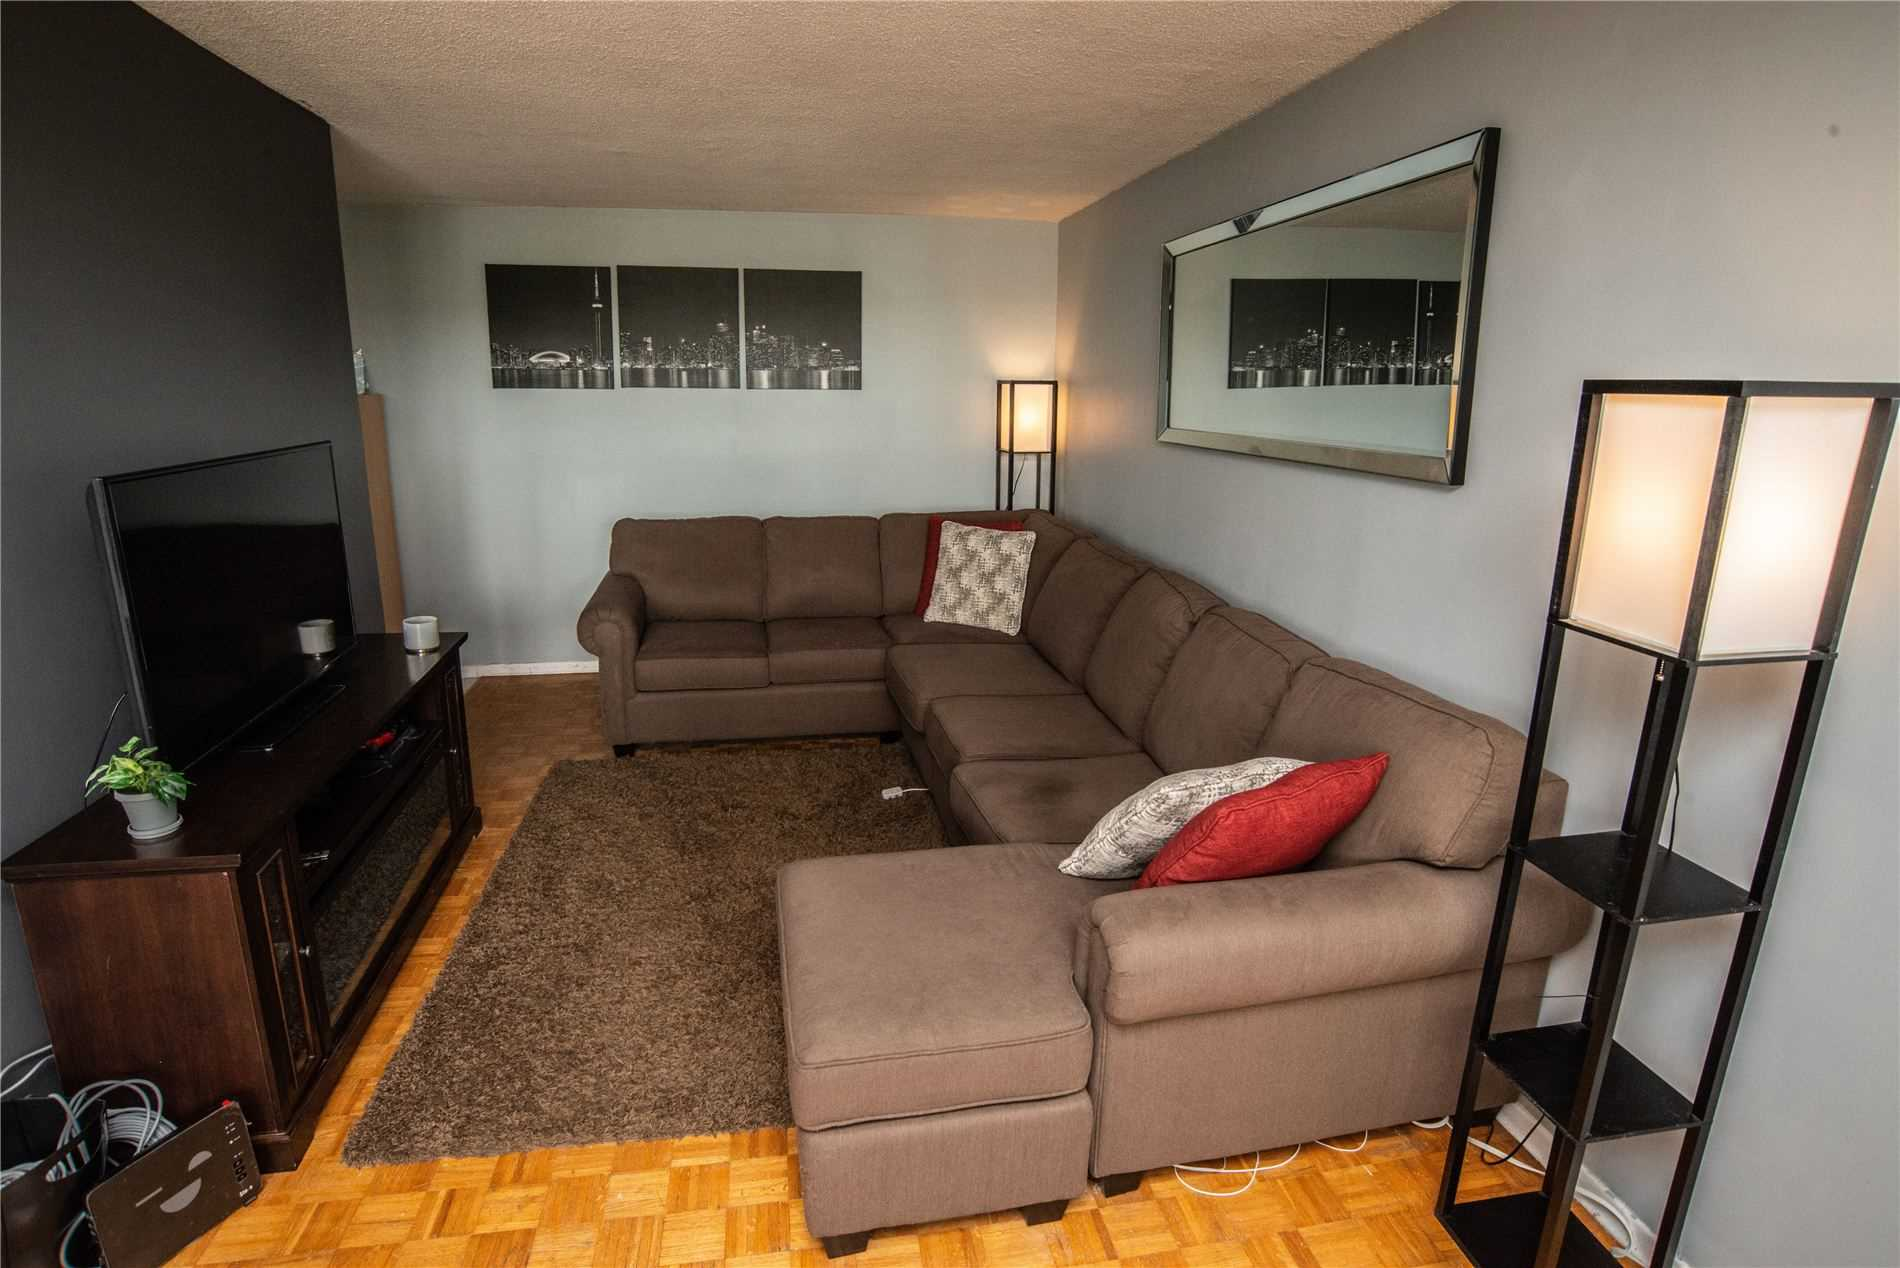 Image 16 of 20 showing inside of 1 Bedroom Condo Apt Apartment for Sale at 215 Glenridge Ave Unit# 310, St. Catharines L2T3J7